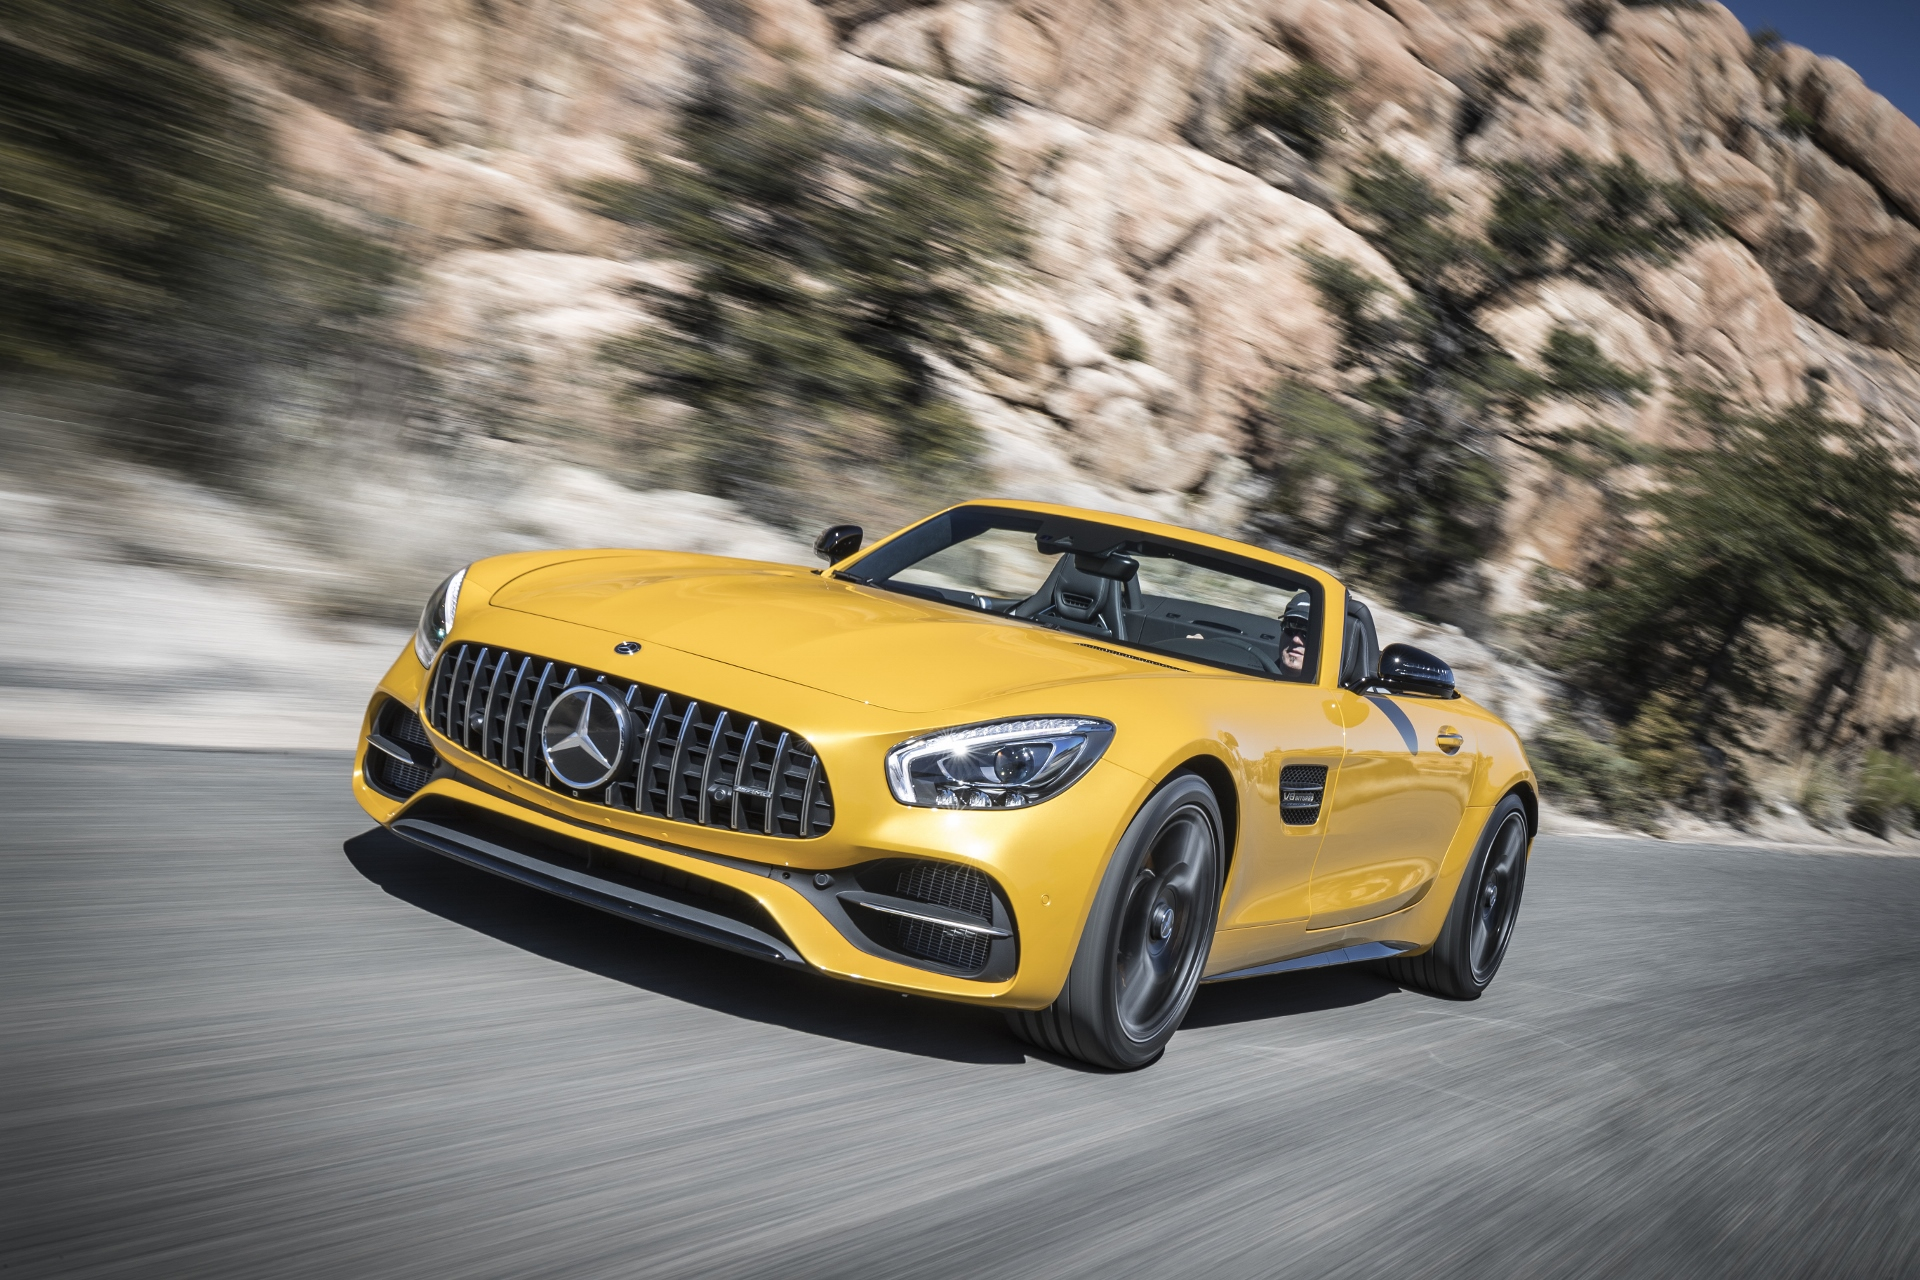 2018 mercedes amg gt c roadster first drive review a special sports car topless or not. Black Bedroom Furniture Sets. Home Design Ideas